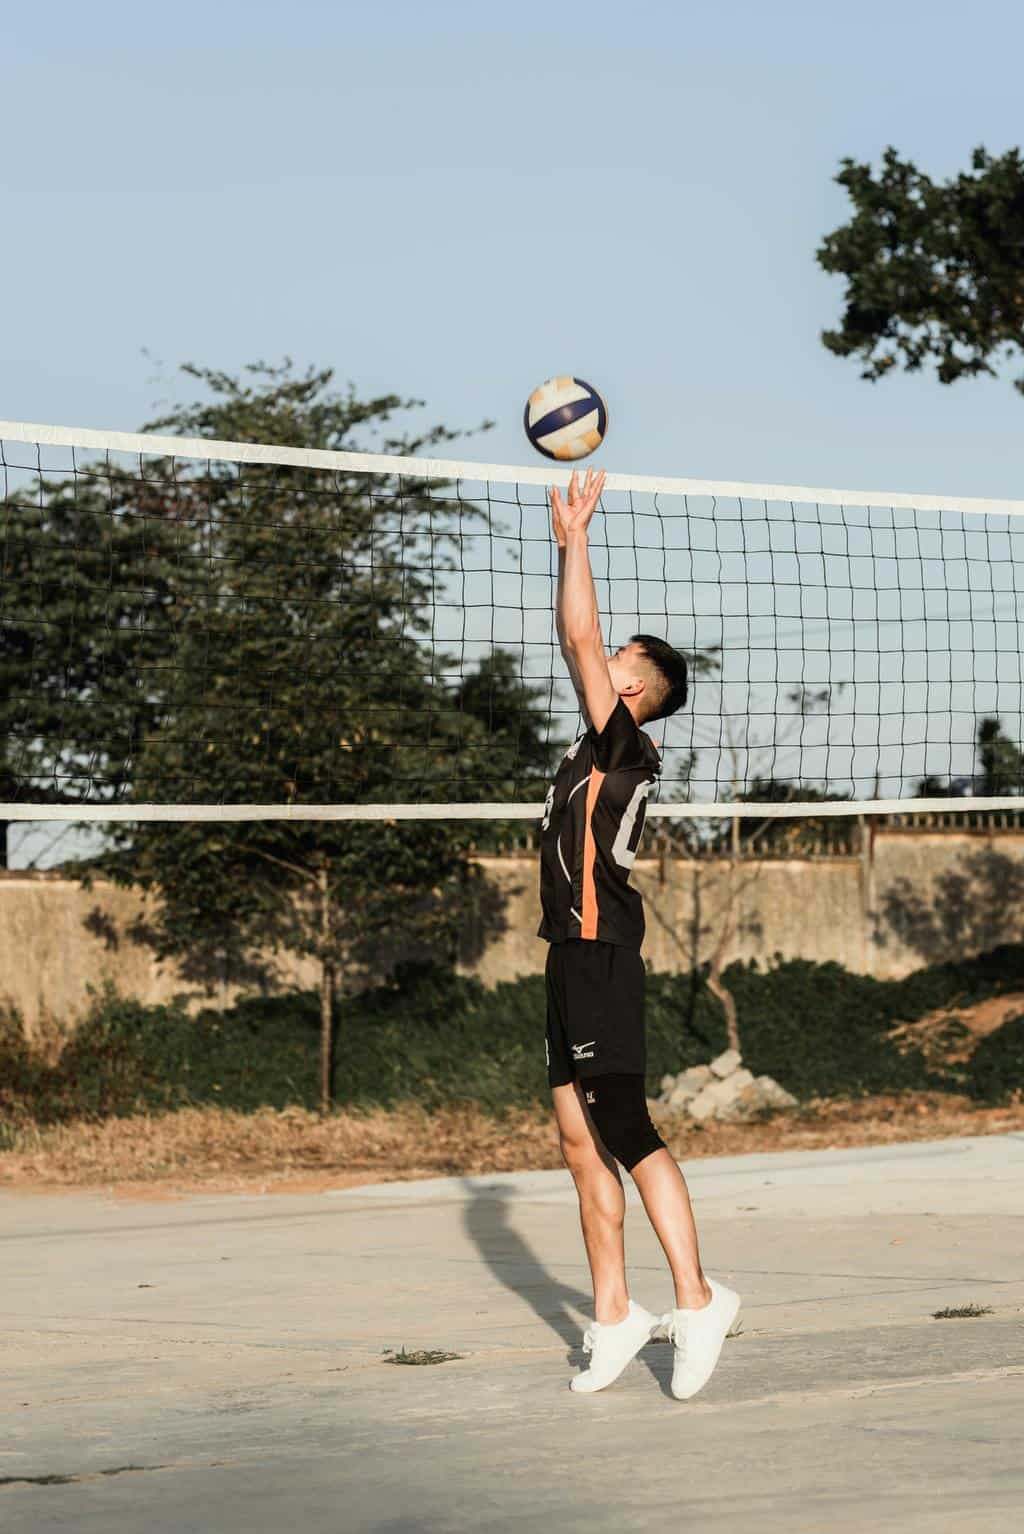 Man practicing volleyball